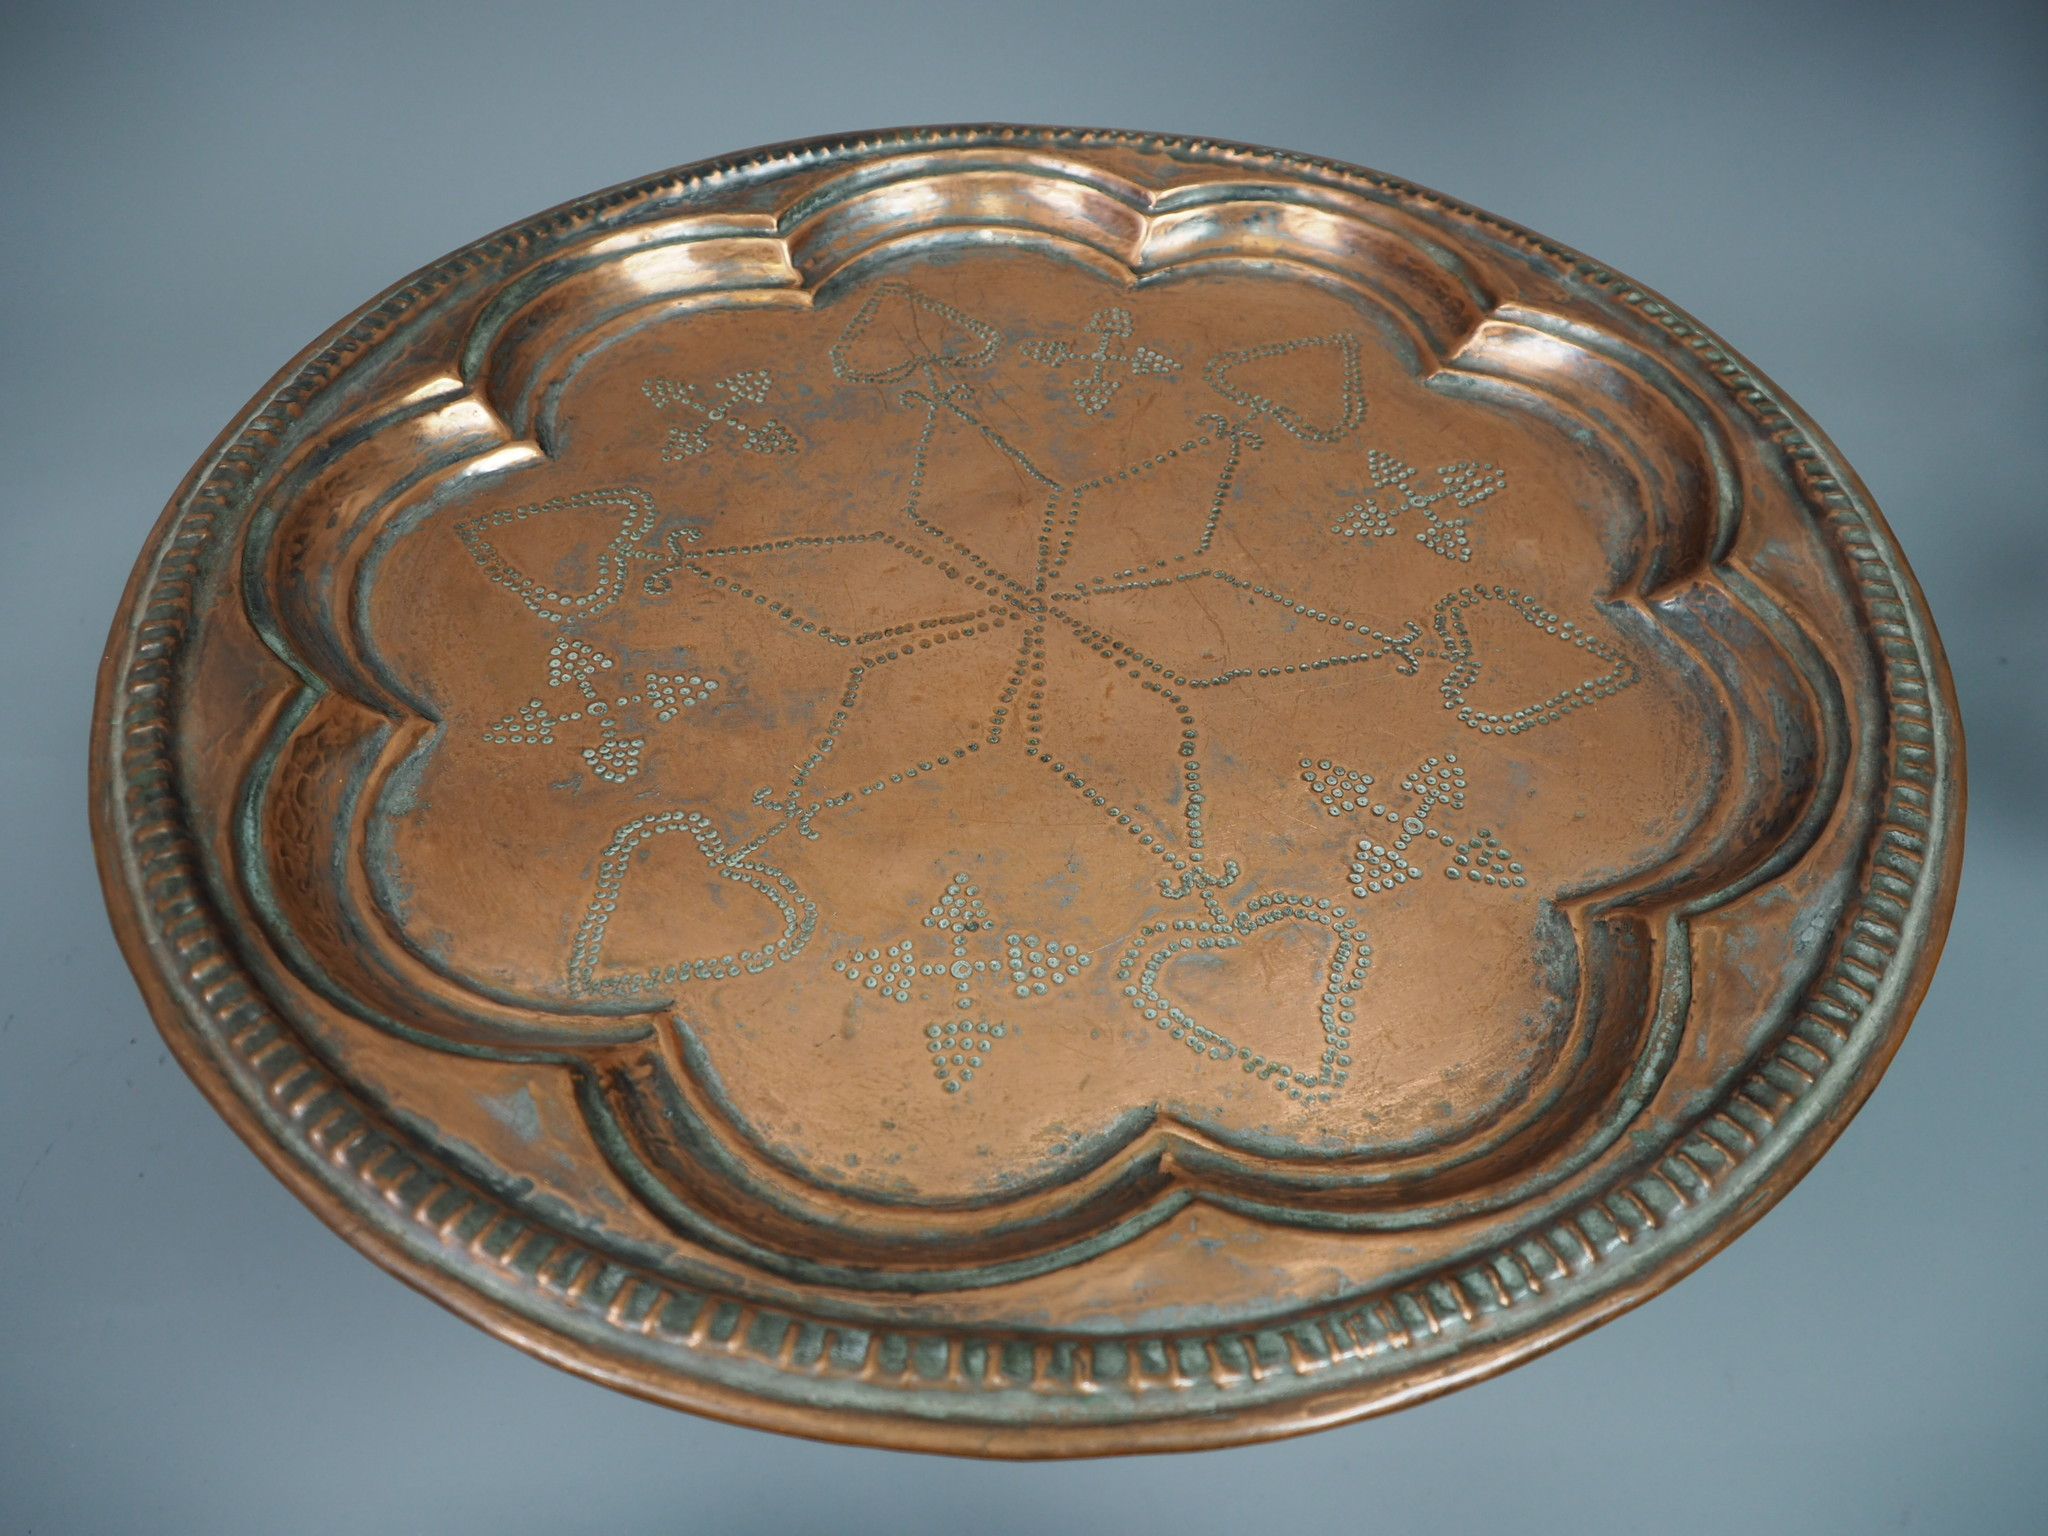 43 cm Antique ottoman orient Islamic Hammer Engraved copper Tray Plate from Afghanistan K2